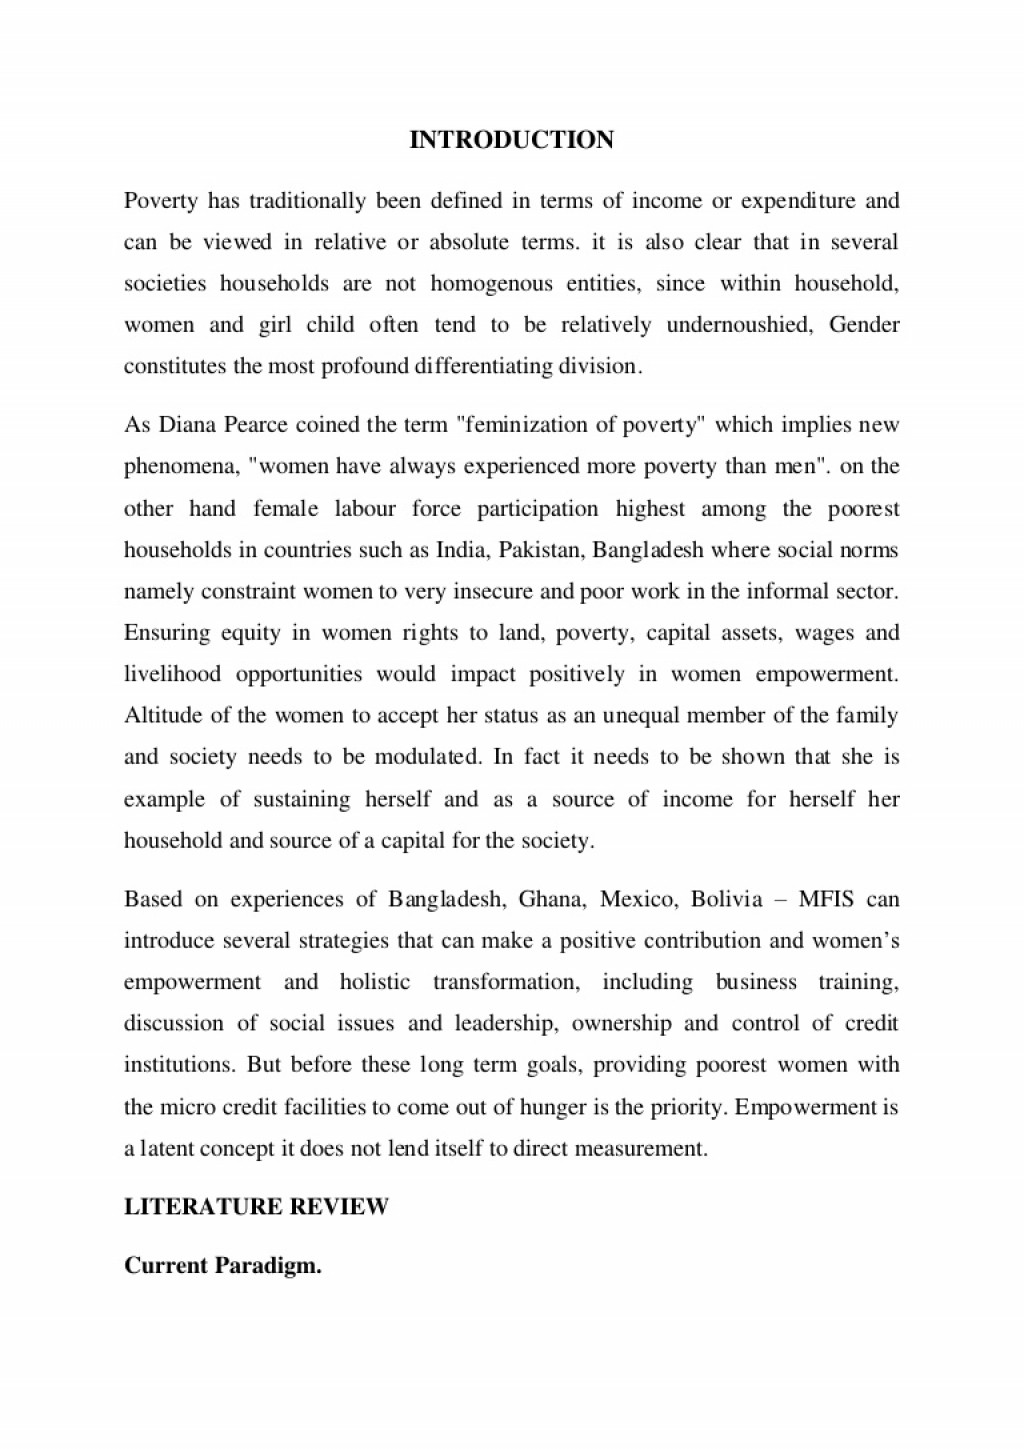 005 Essay Example Poverty Has Traditionally Been Defined In Terms Of Income Or Expenditure And Can Viewed Relative Absolute Prepared By Naresh Sehdev Phpapp01 Incredible On Women Education Women's Rights India Hindi Health Large